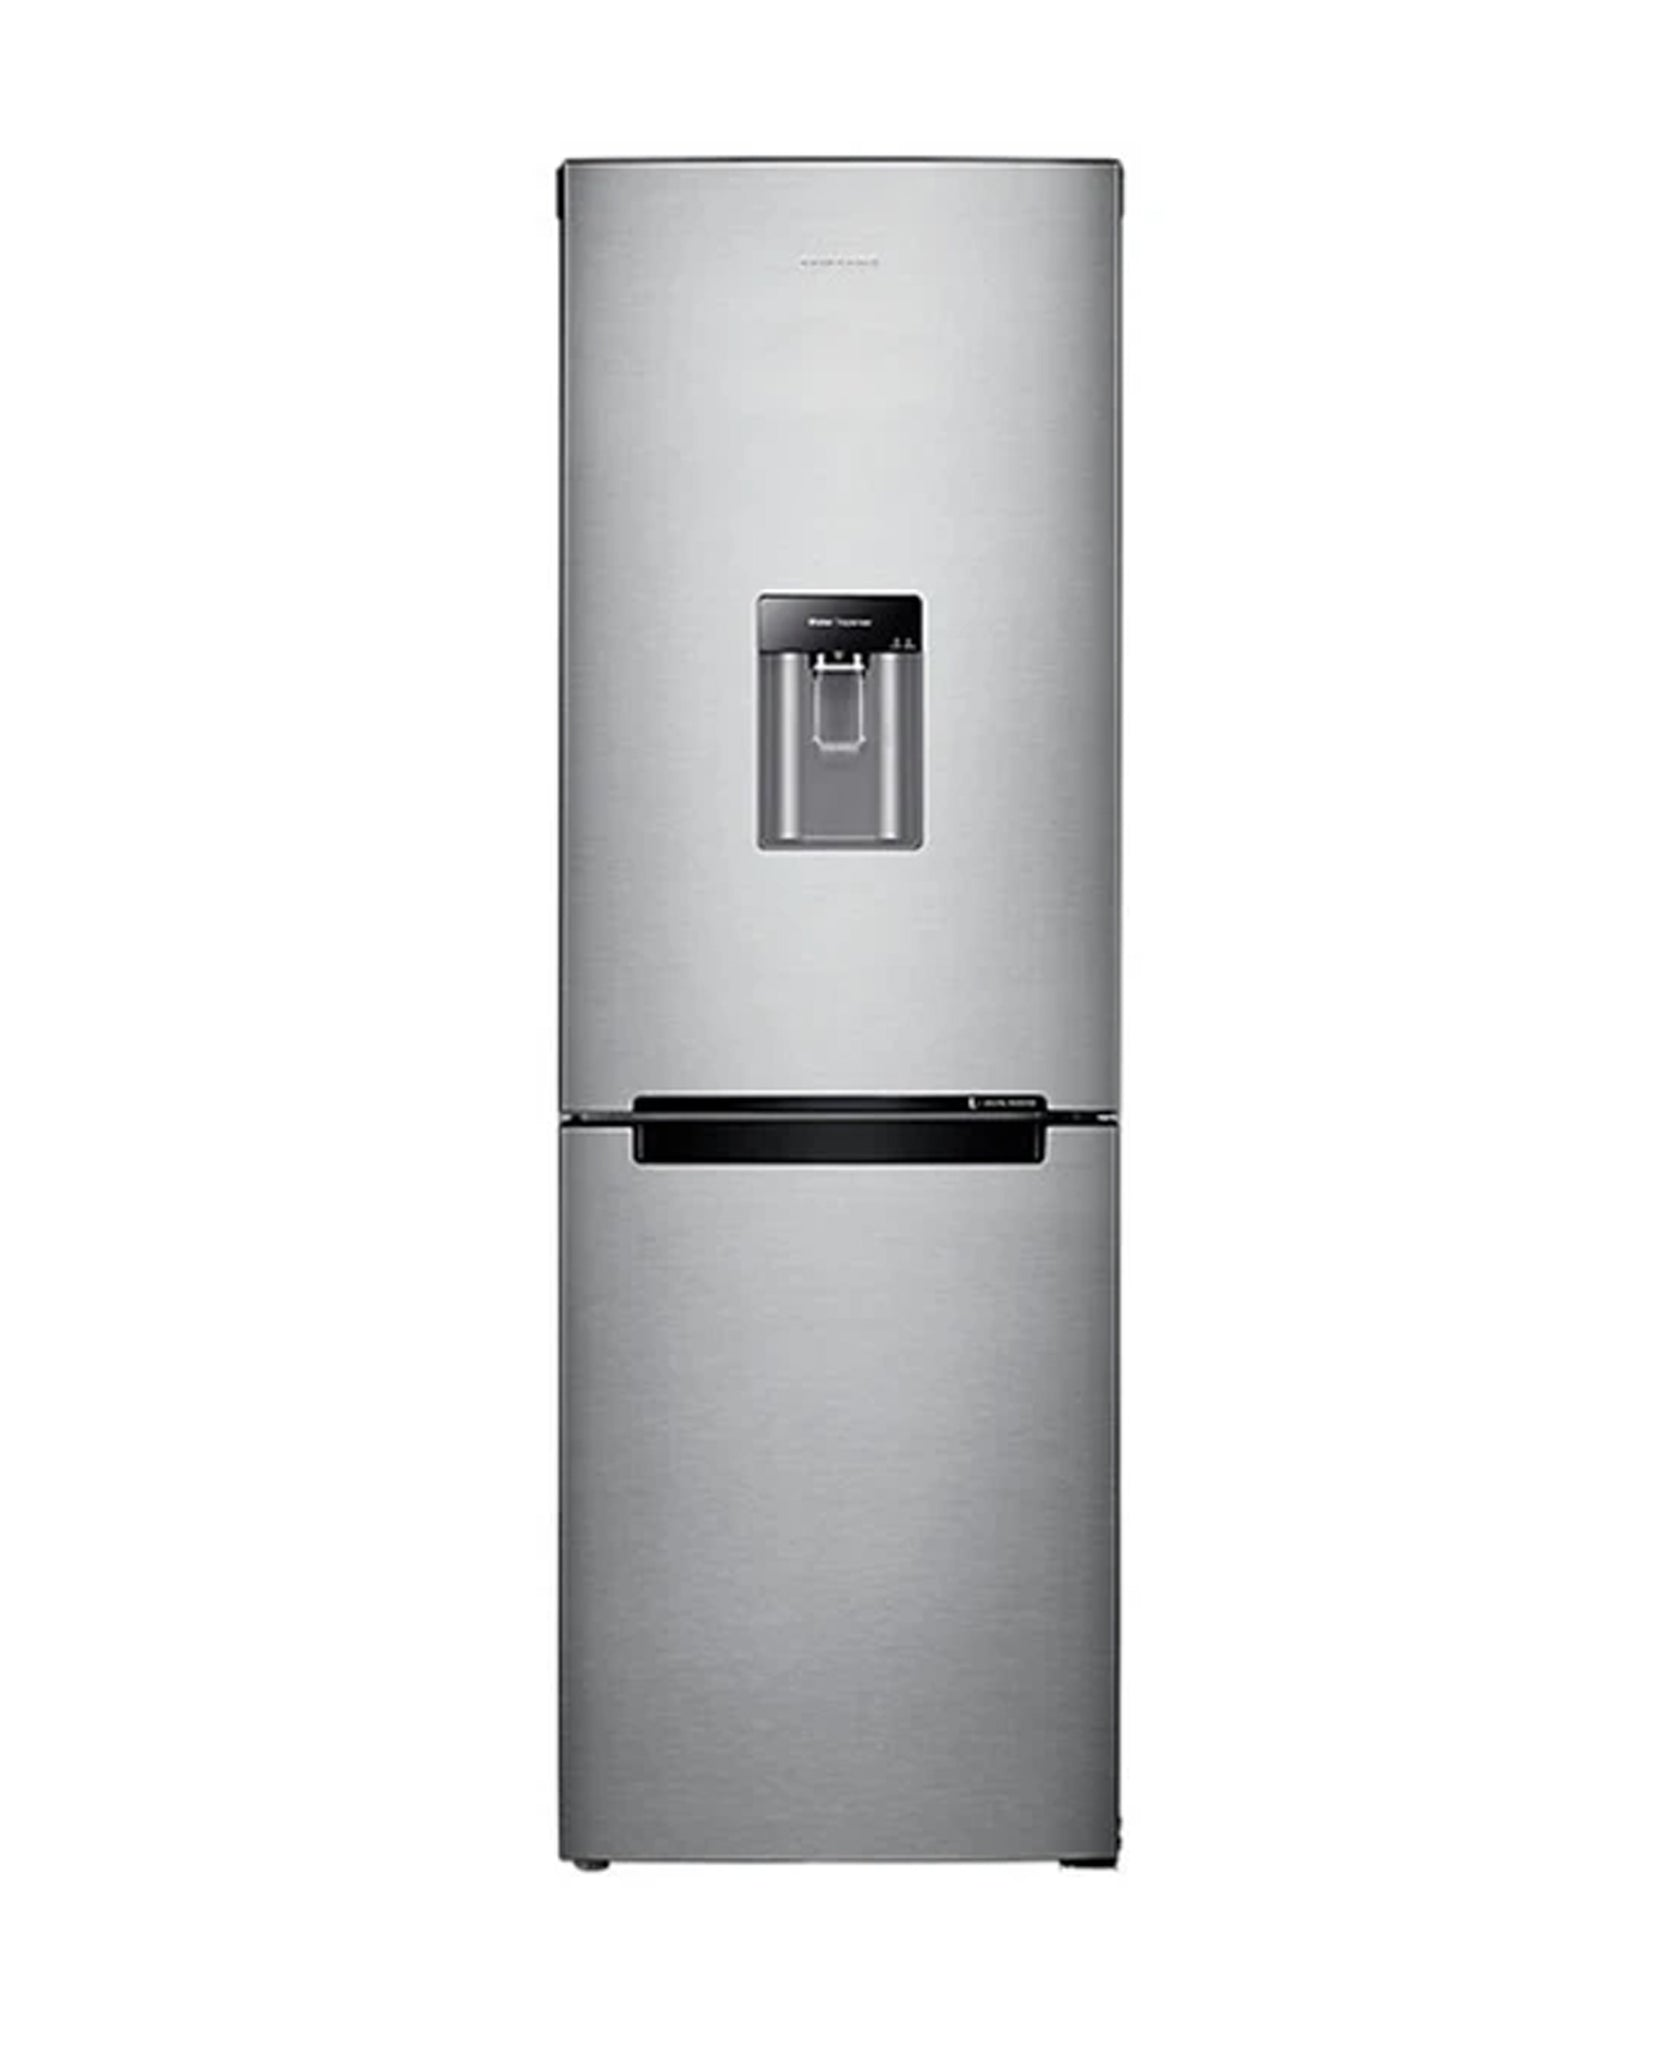 Samsung 288L Bottom Freezer Fridge RB29HWR3D8A Combi Fridge